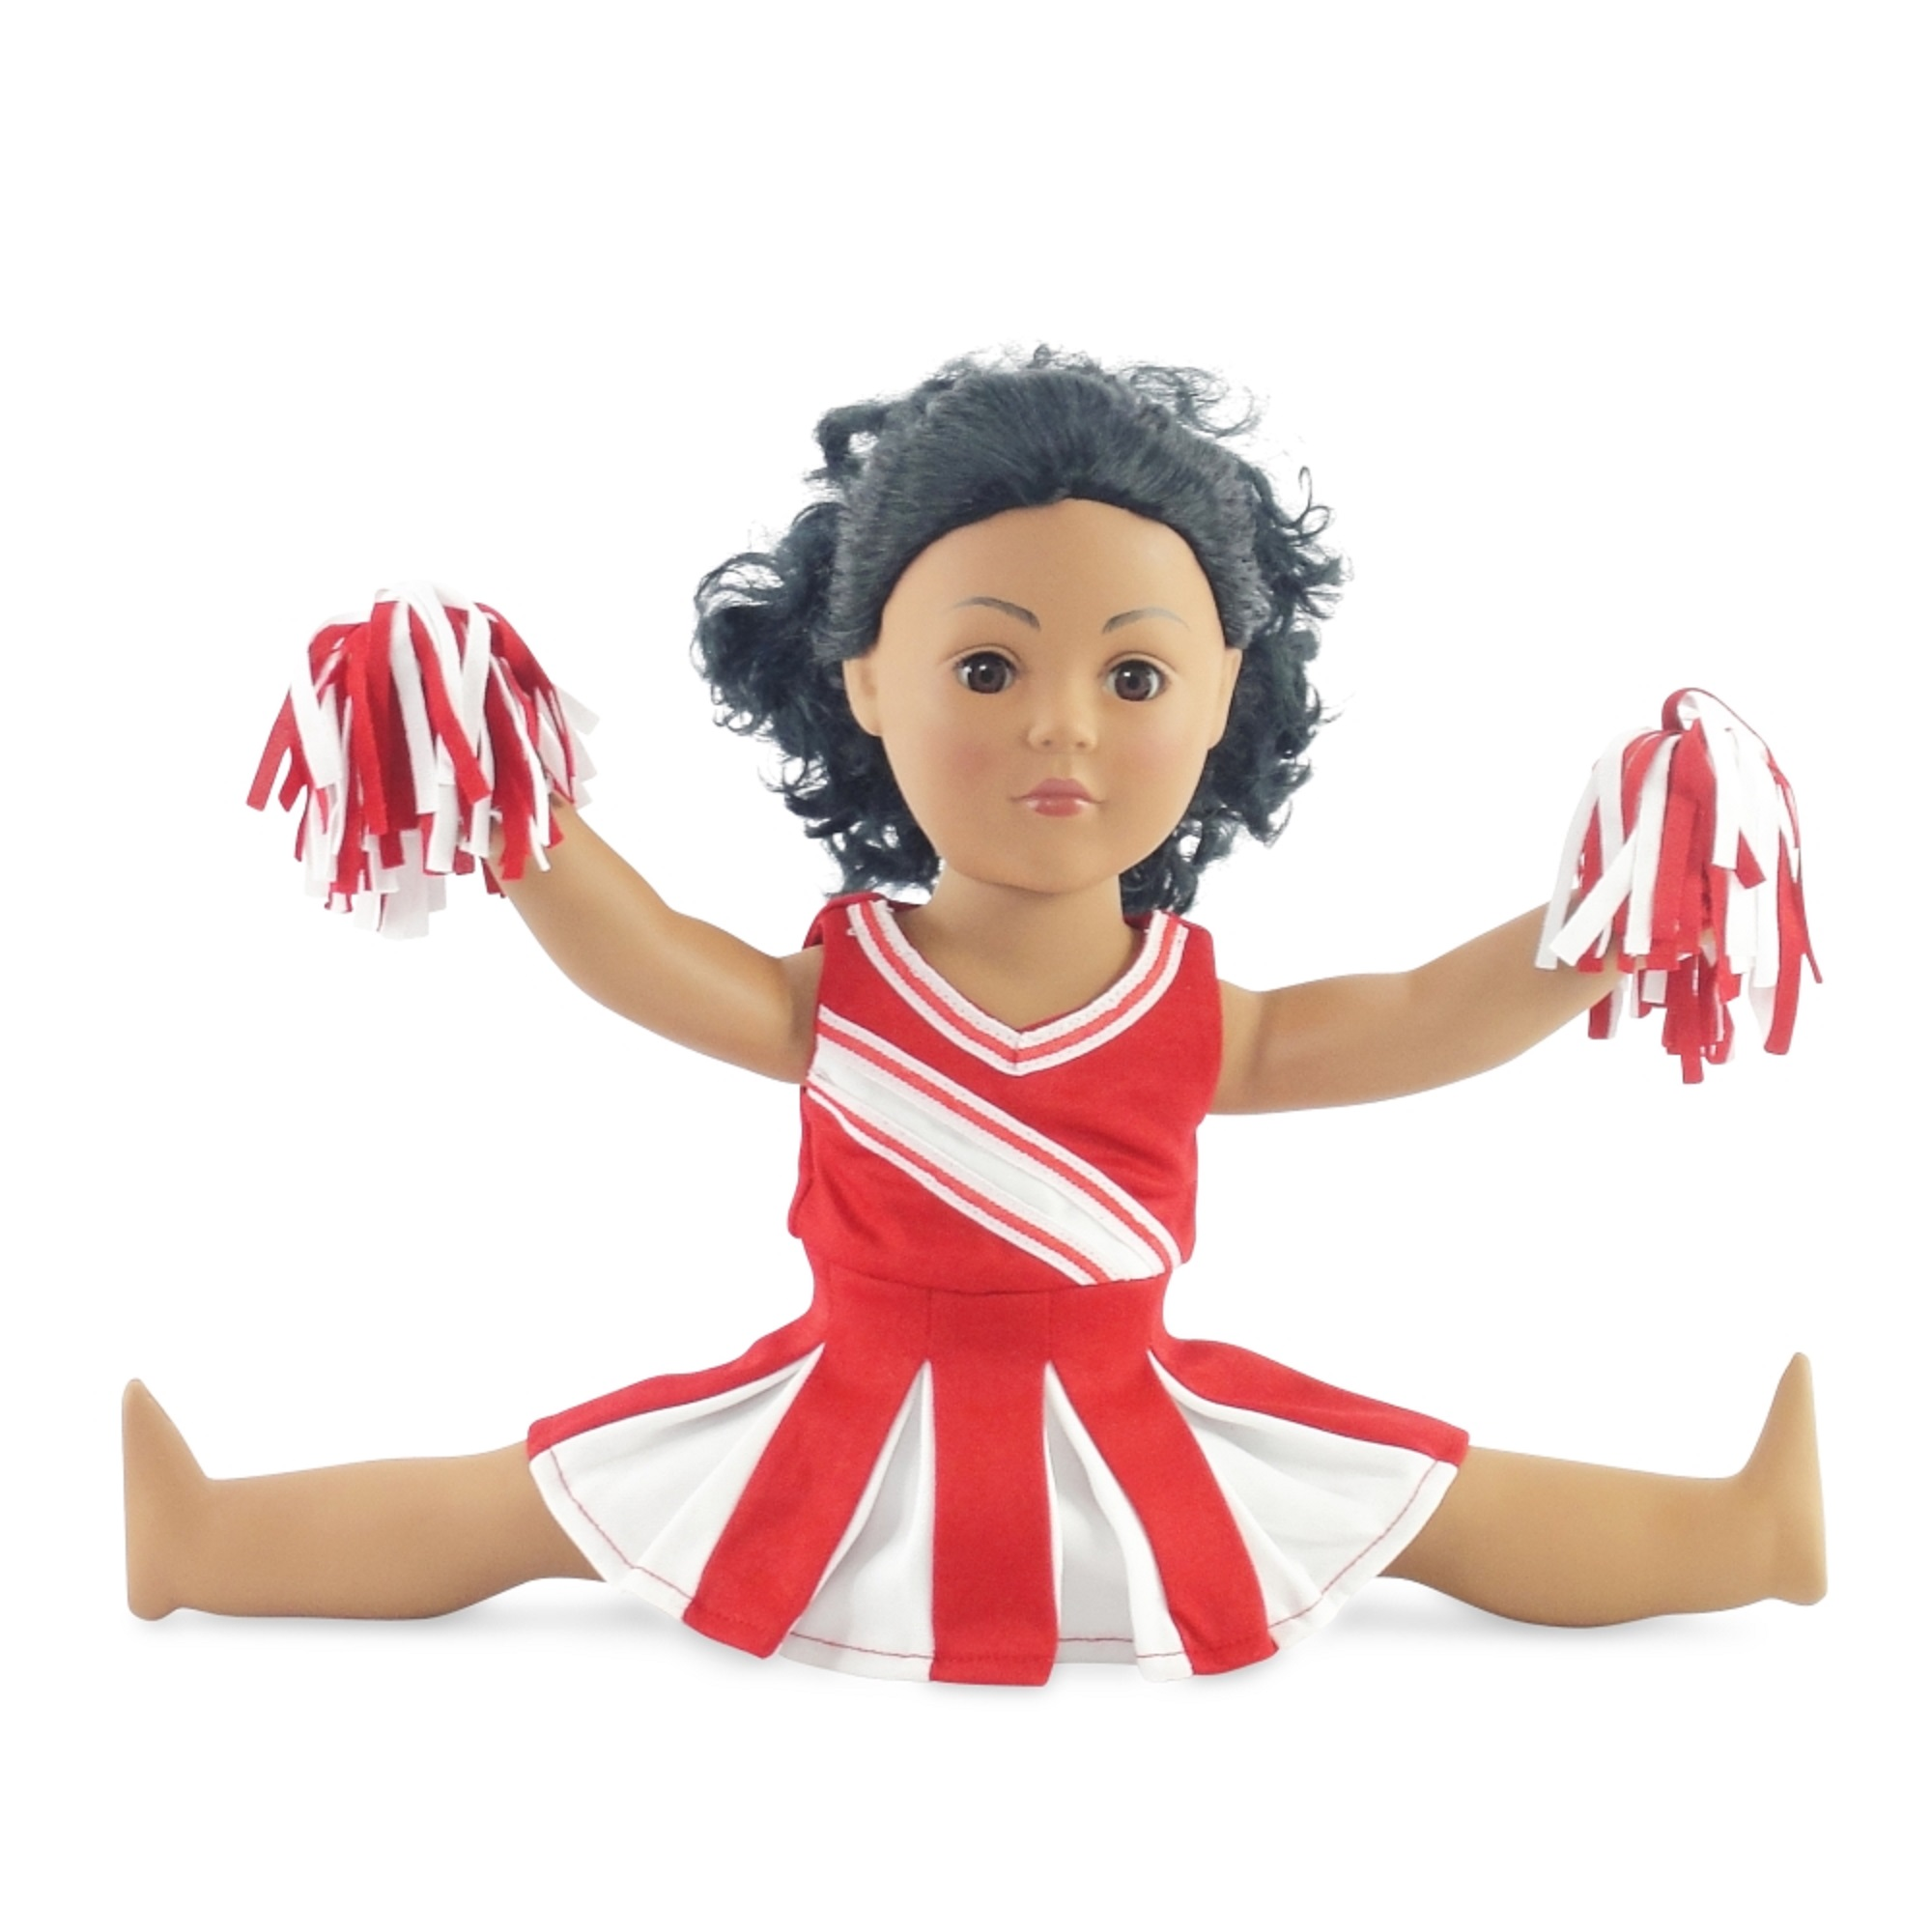 "Doll Clothes Fit American Girl Doll - Red Cheerleader Outfit - 18 Inch Clothing with 18"" Accessories"